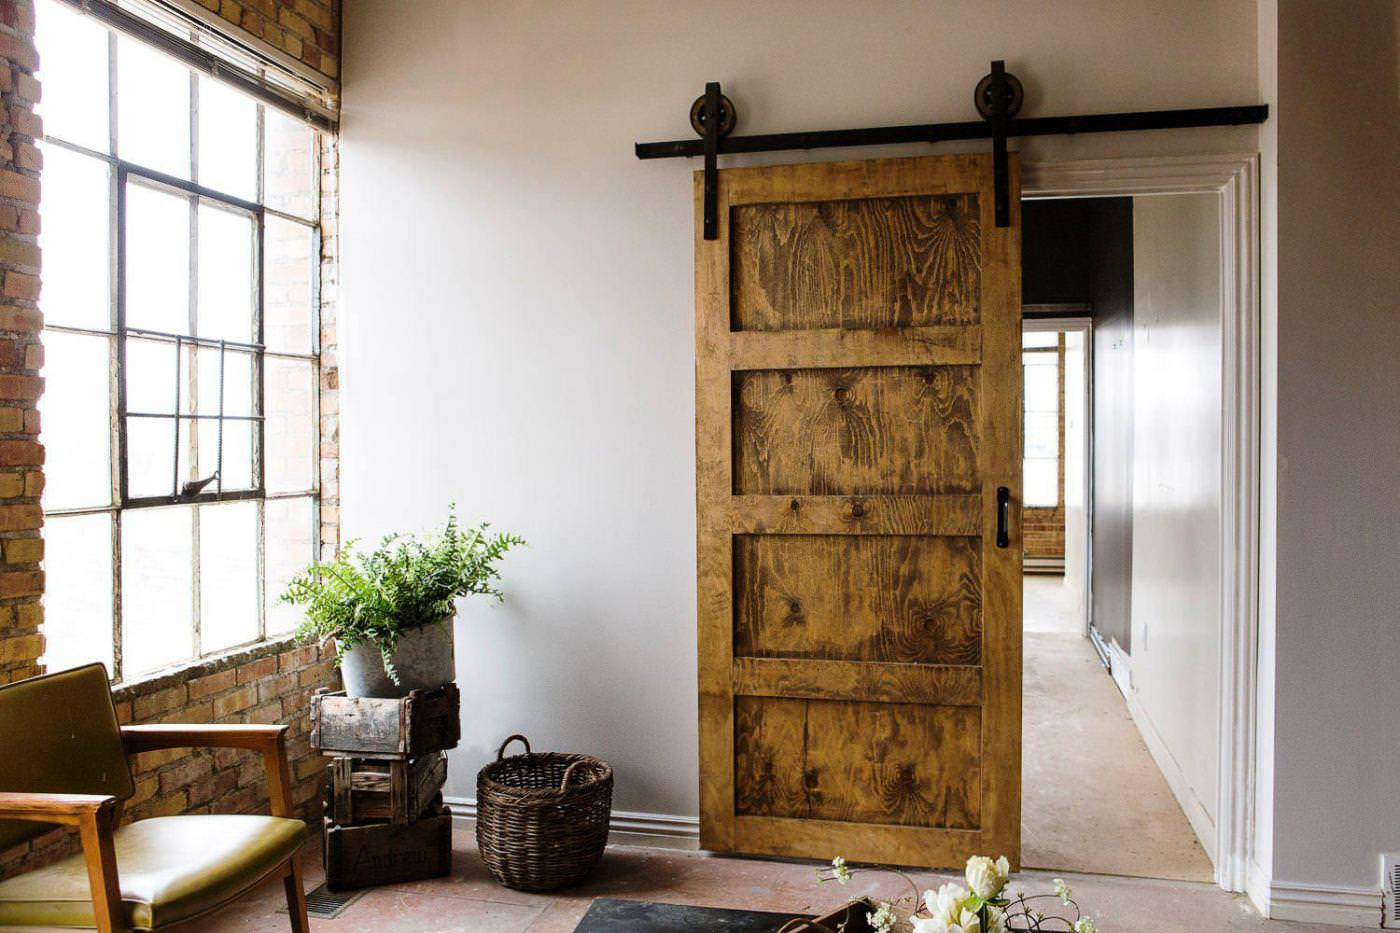 5 interior sliding barn door ideas mimi zackery helping women build a successful side. Black Bedroom Furniture Sets. Home Design Ideas